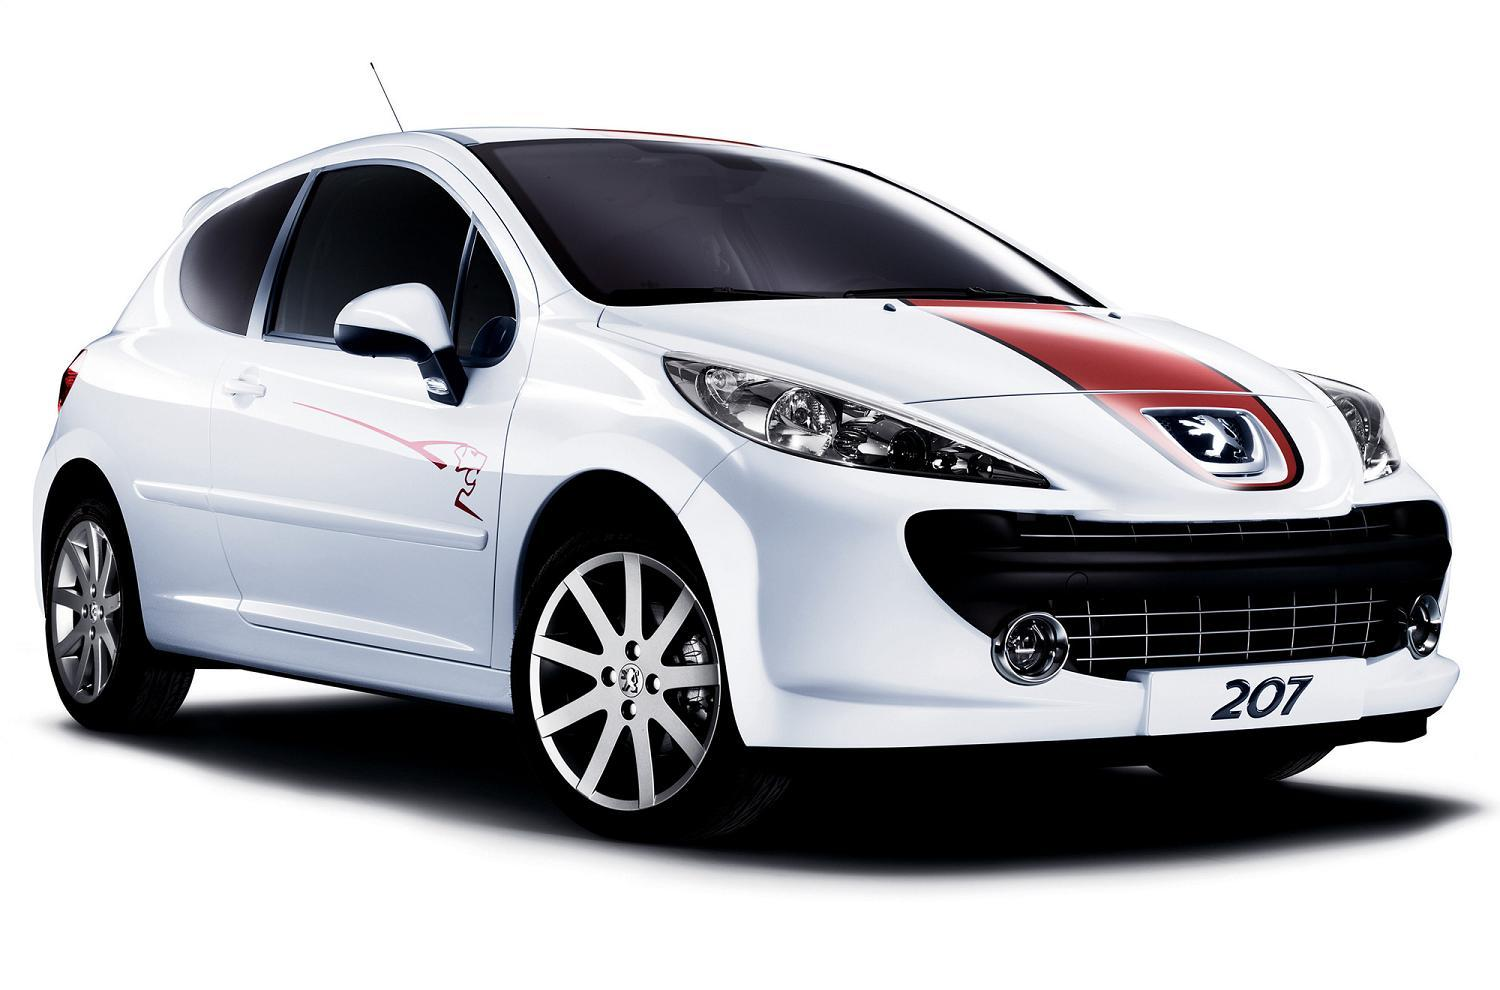 peugeot 207 le mans series specs photos videos and more on topworldauto. Black Bedroom Furniture Sets. Home Design Ideas